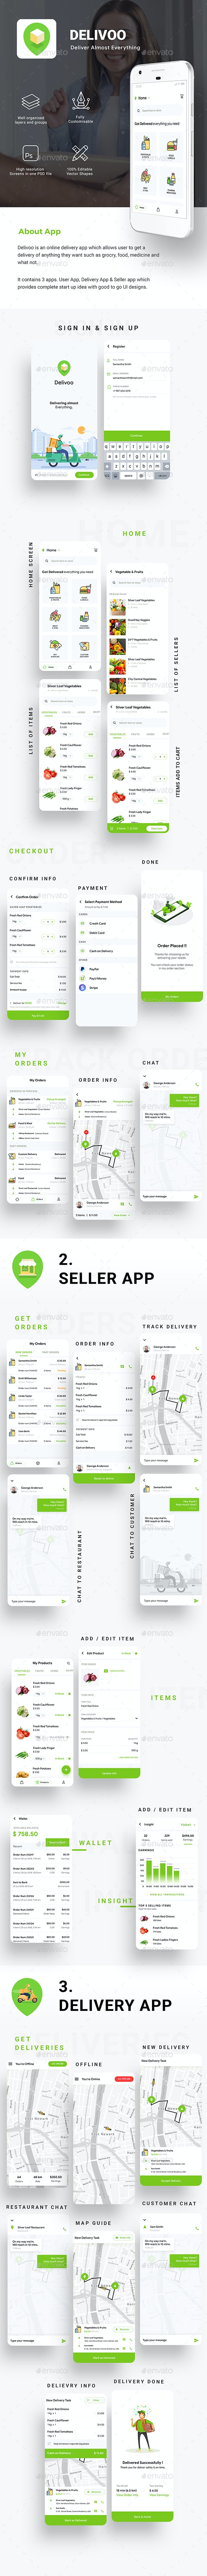 Custom Delivery for Food, Grocery, etc. | User, vendor & Delivery App UI | Delivoo - User Interfaces Web Elements